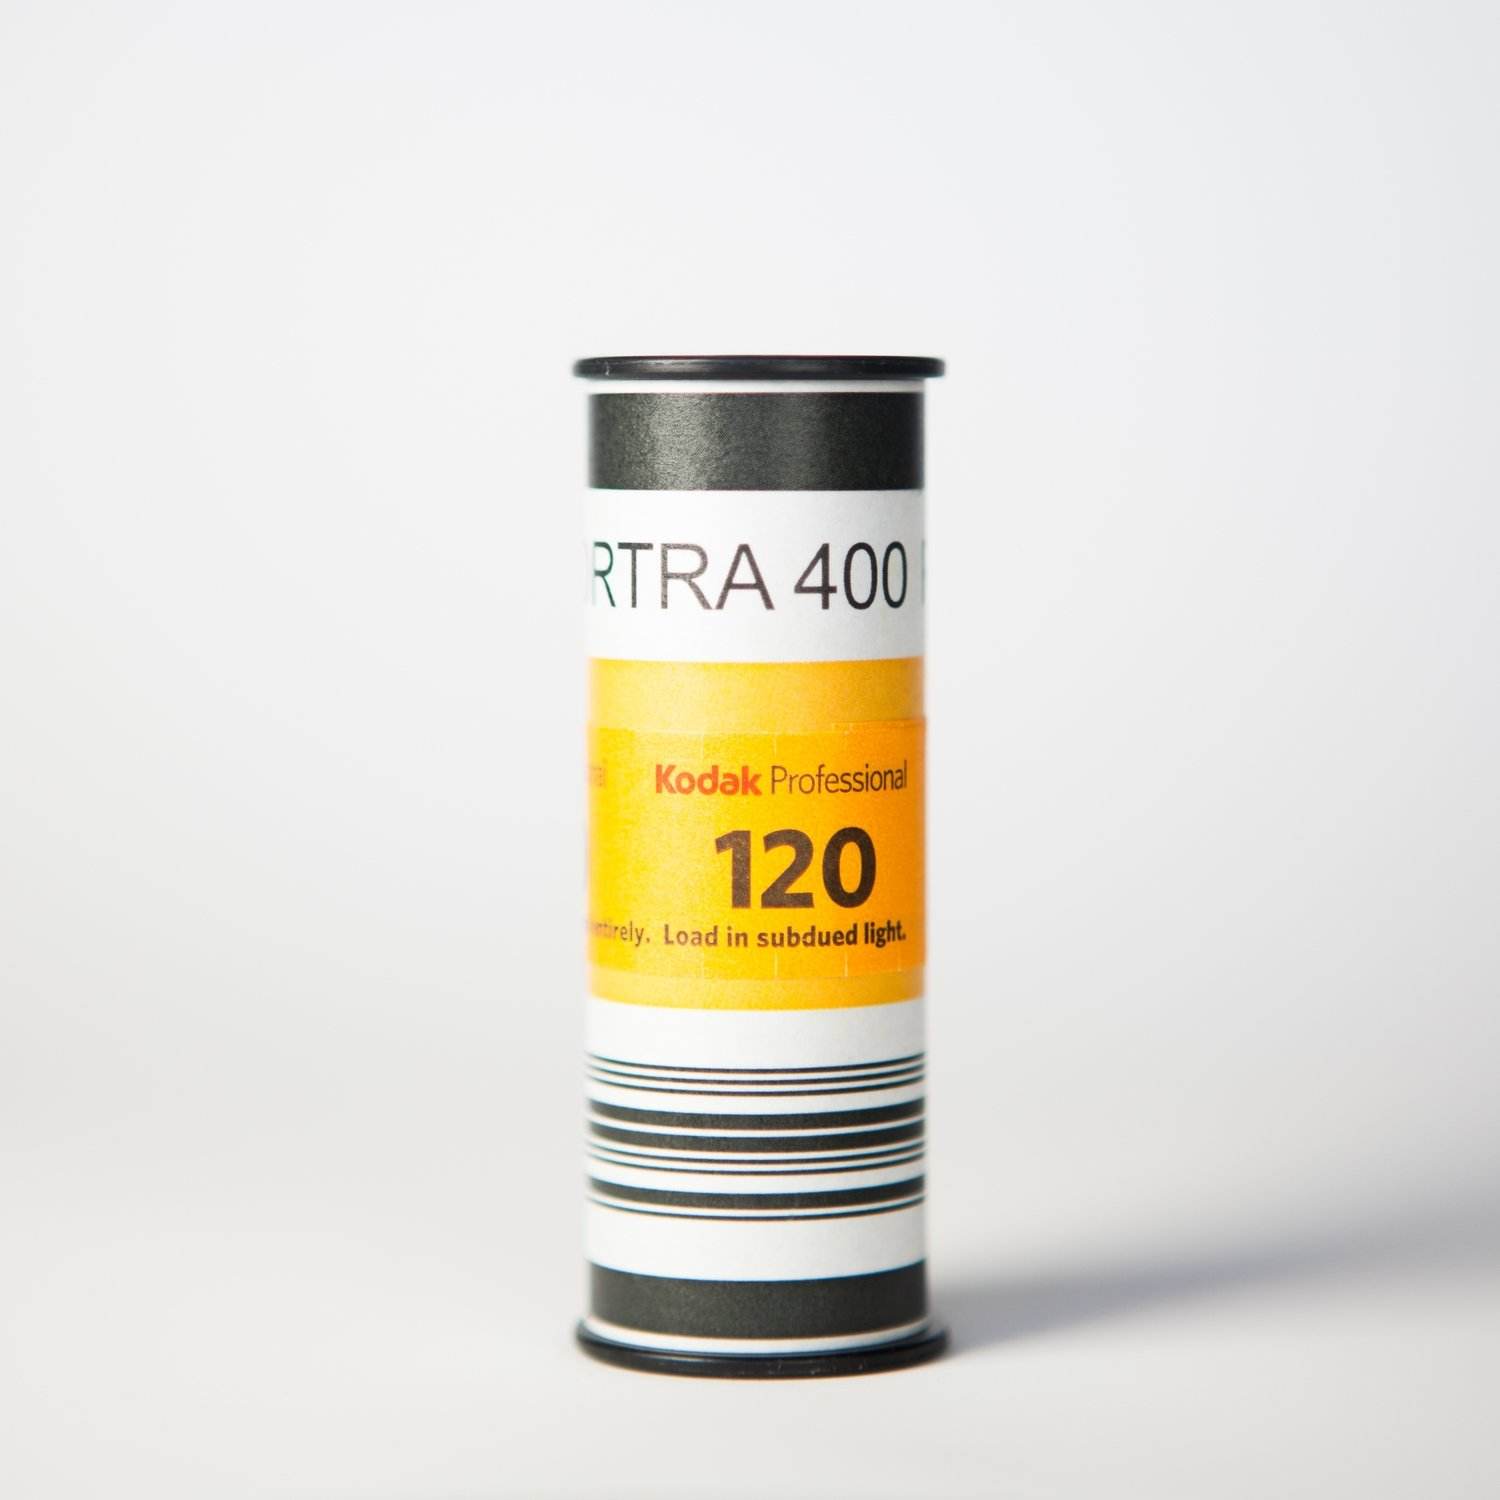 Kodak Portra 400 120 - SINGLE ROLL ($6.85/roll)